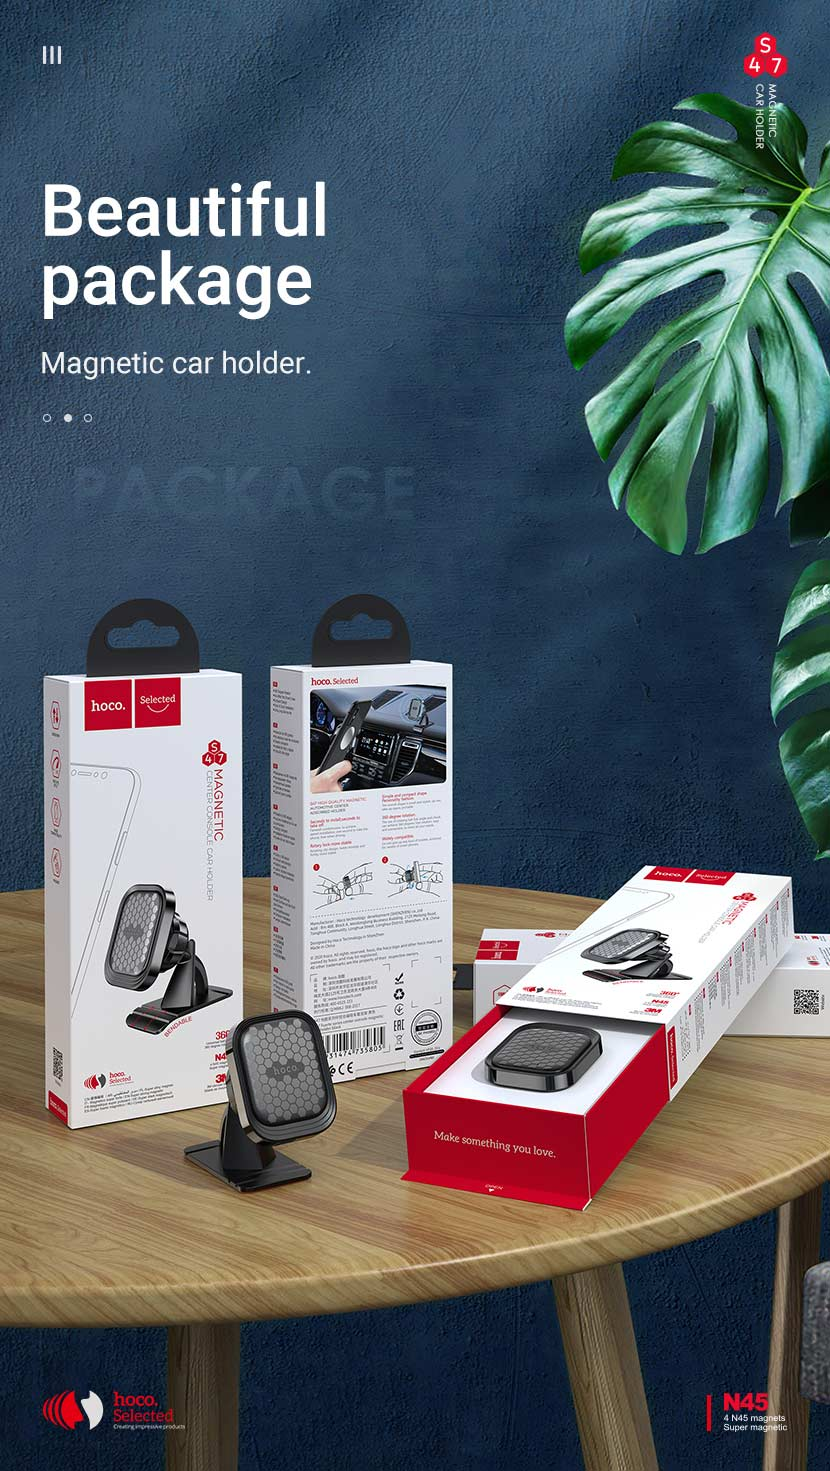 hoco selected news s47 fuerte series center console magnetic car holder package en